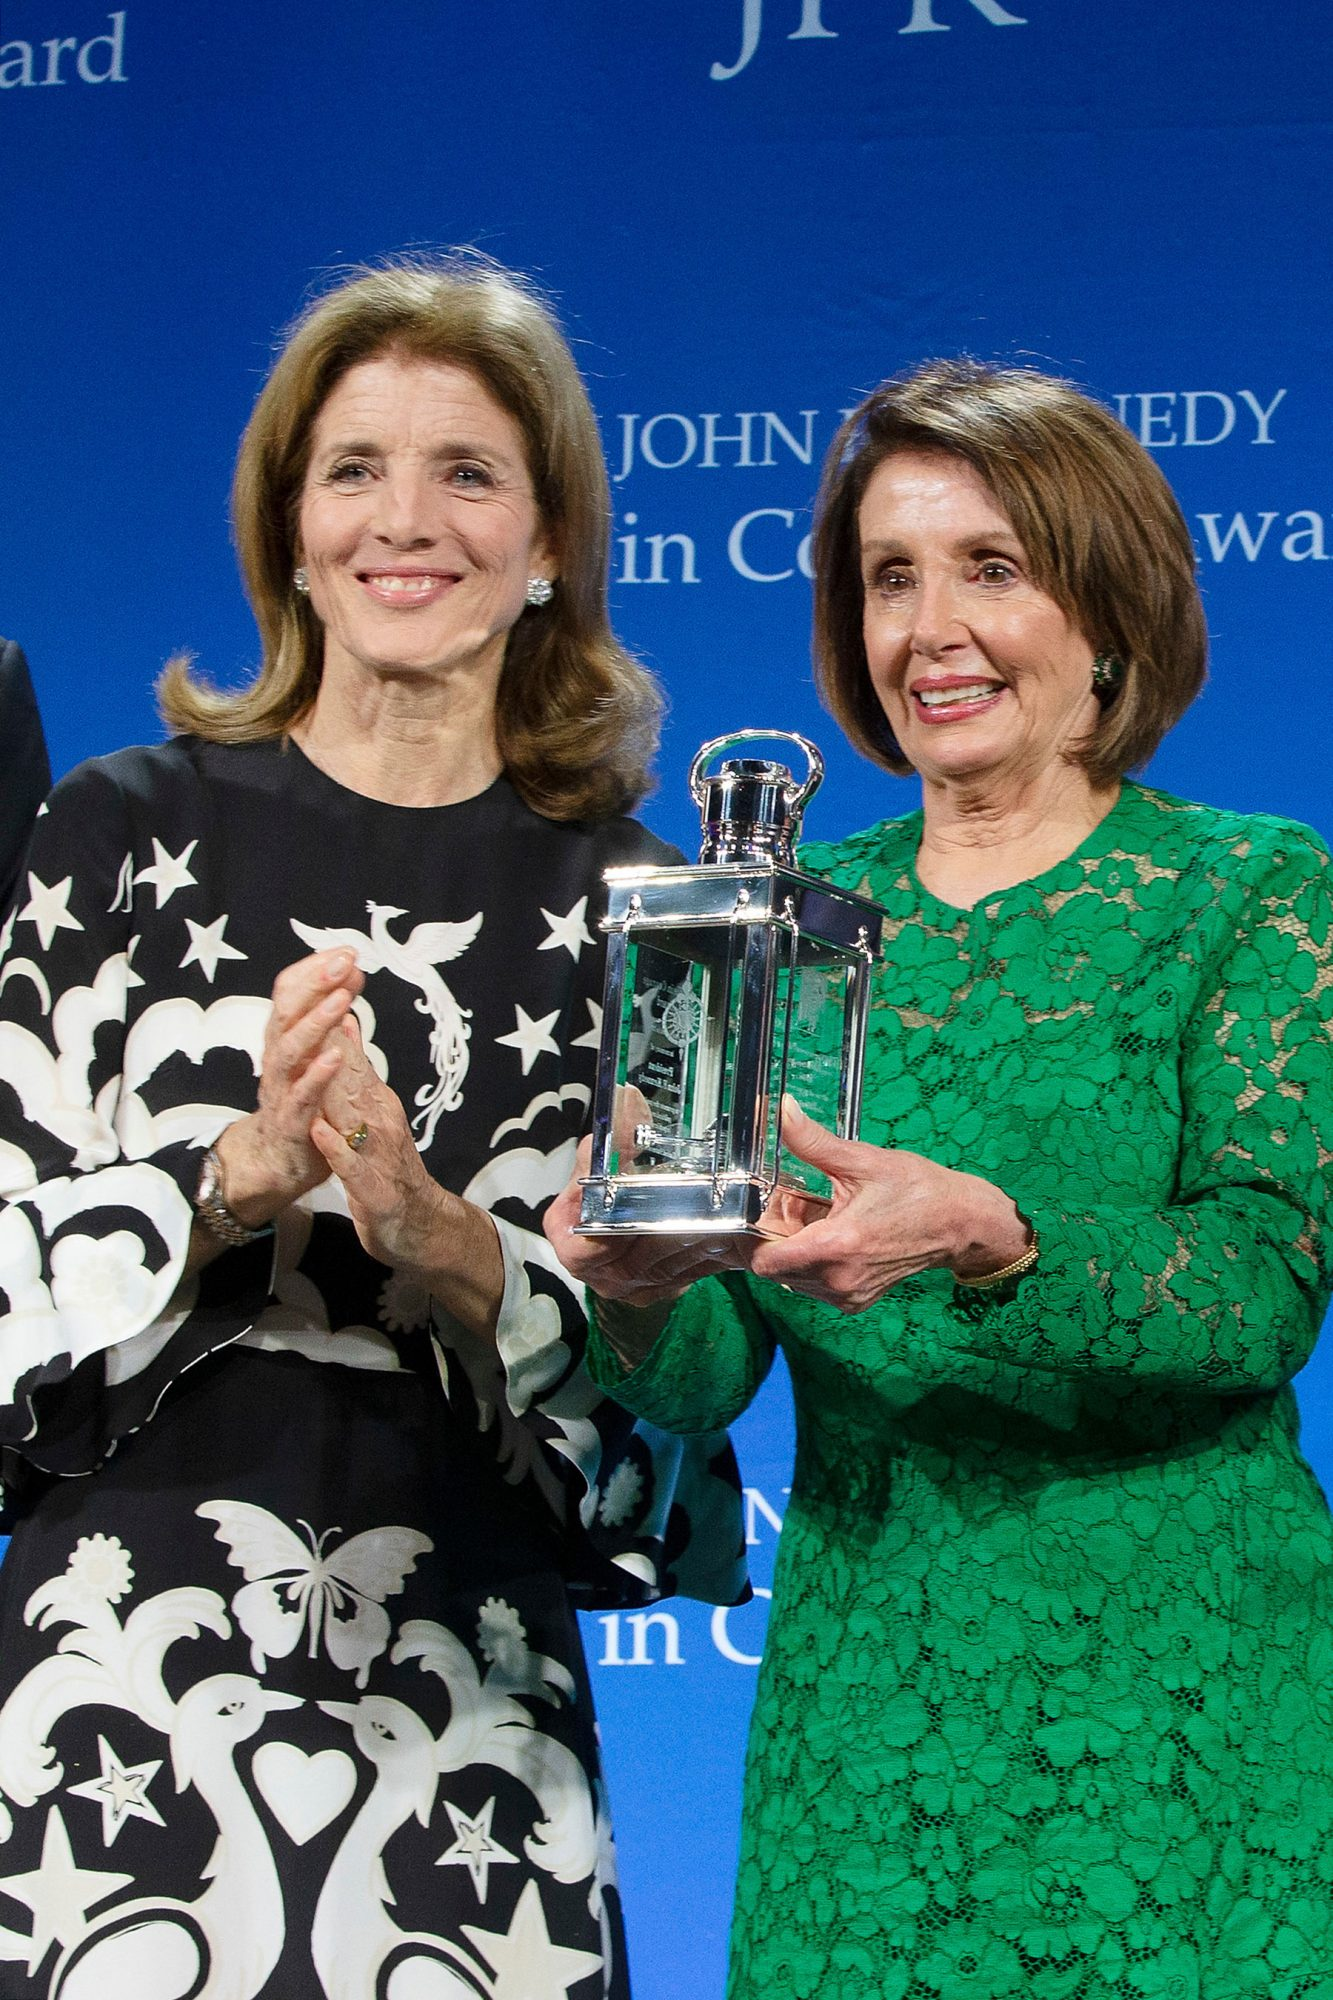 CAROLINE KENNEDY & NANCY PELOSI